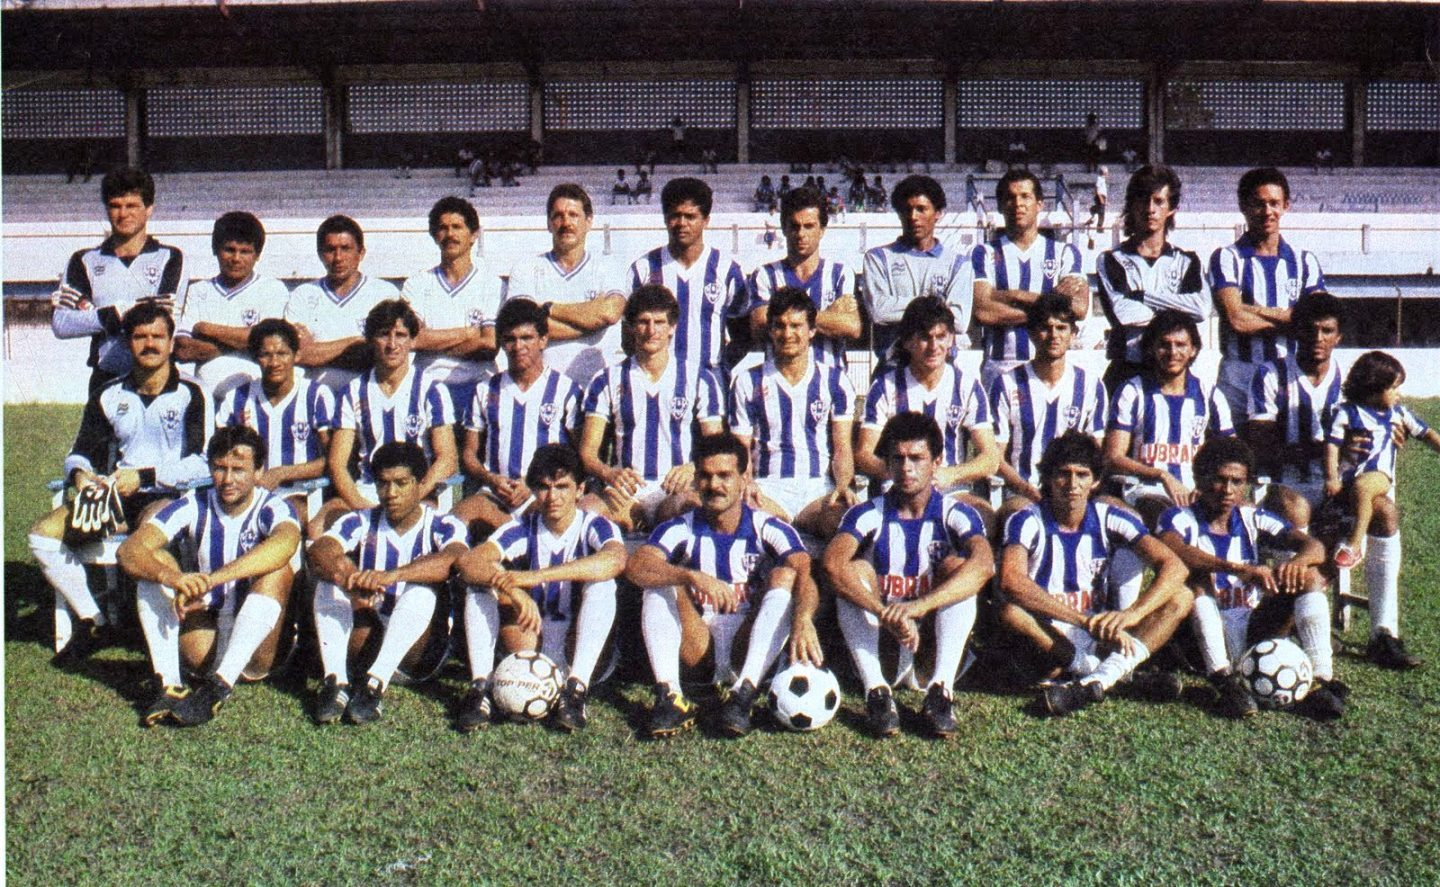 Paysandu Sport Club: The story of a shirt from South America